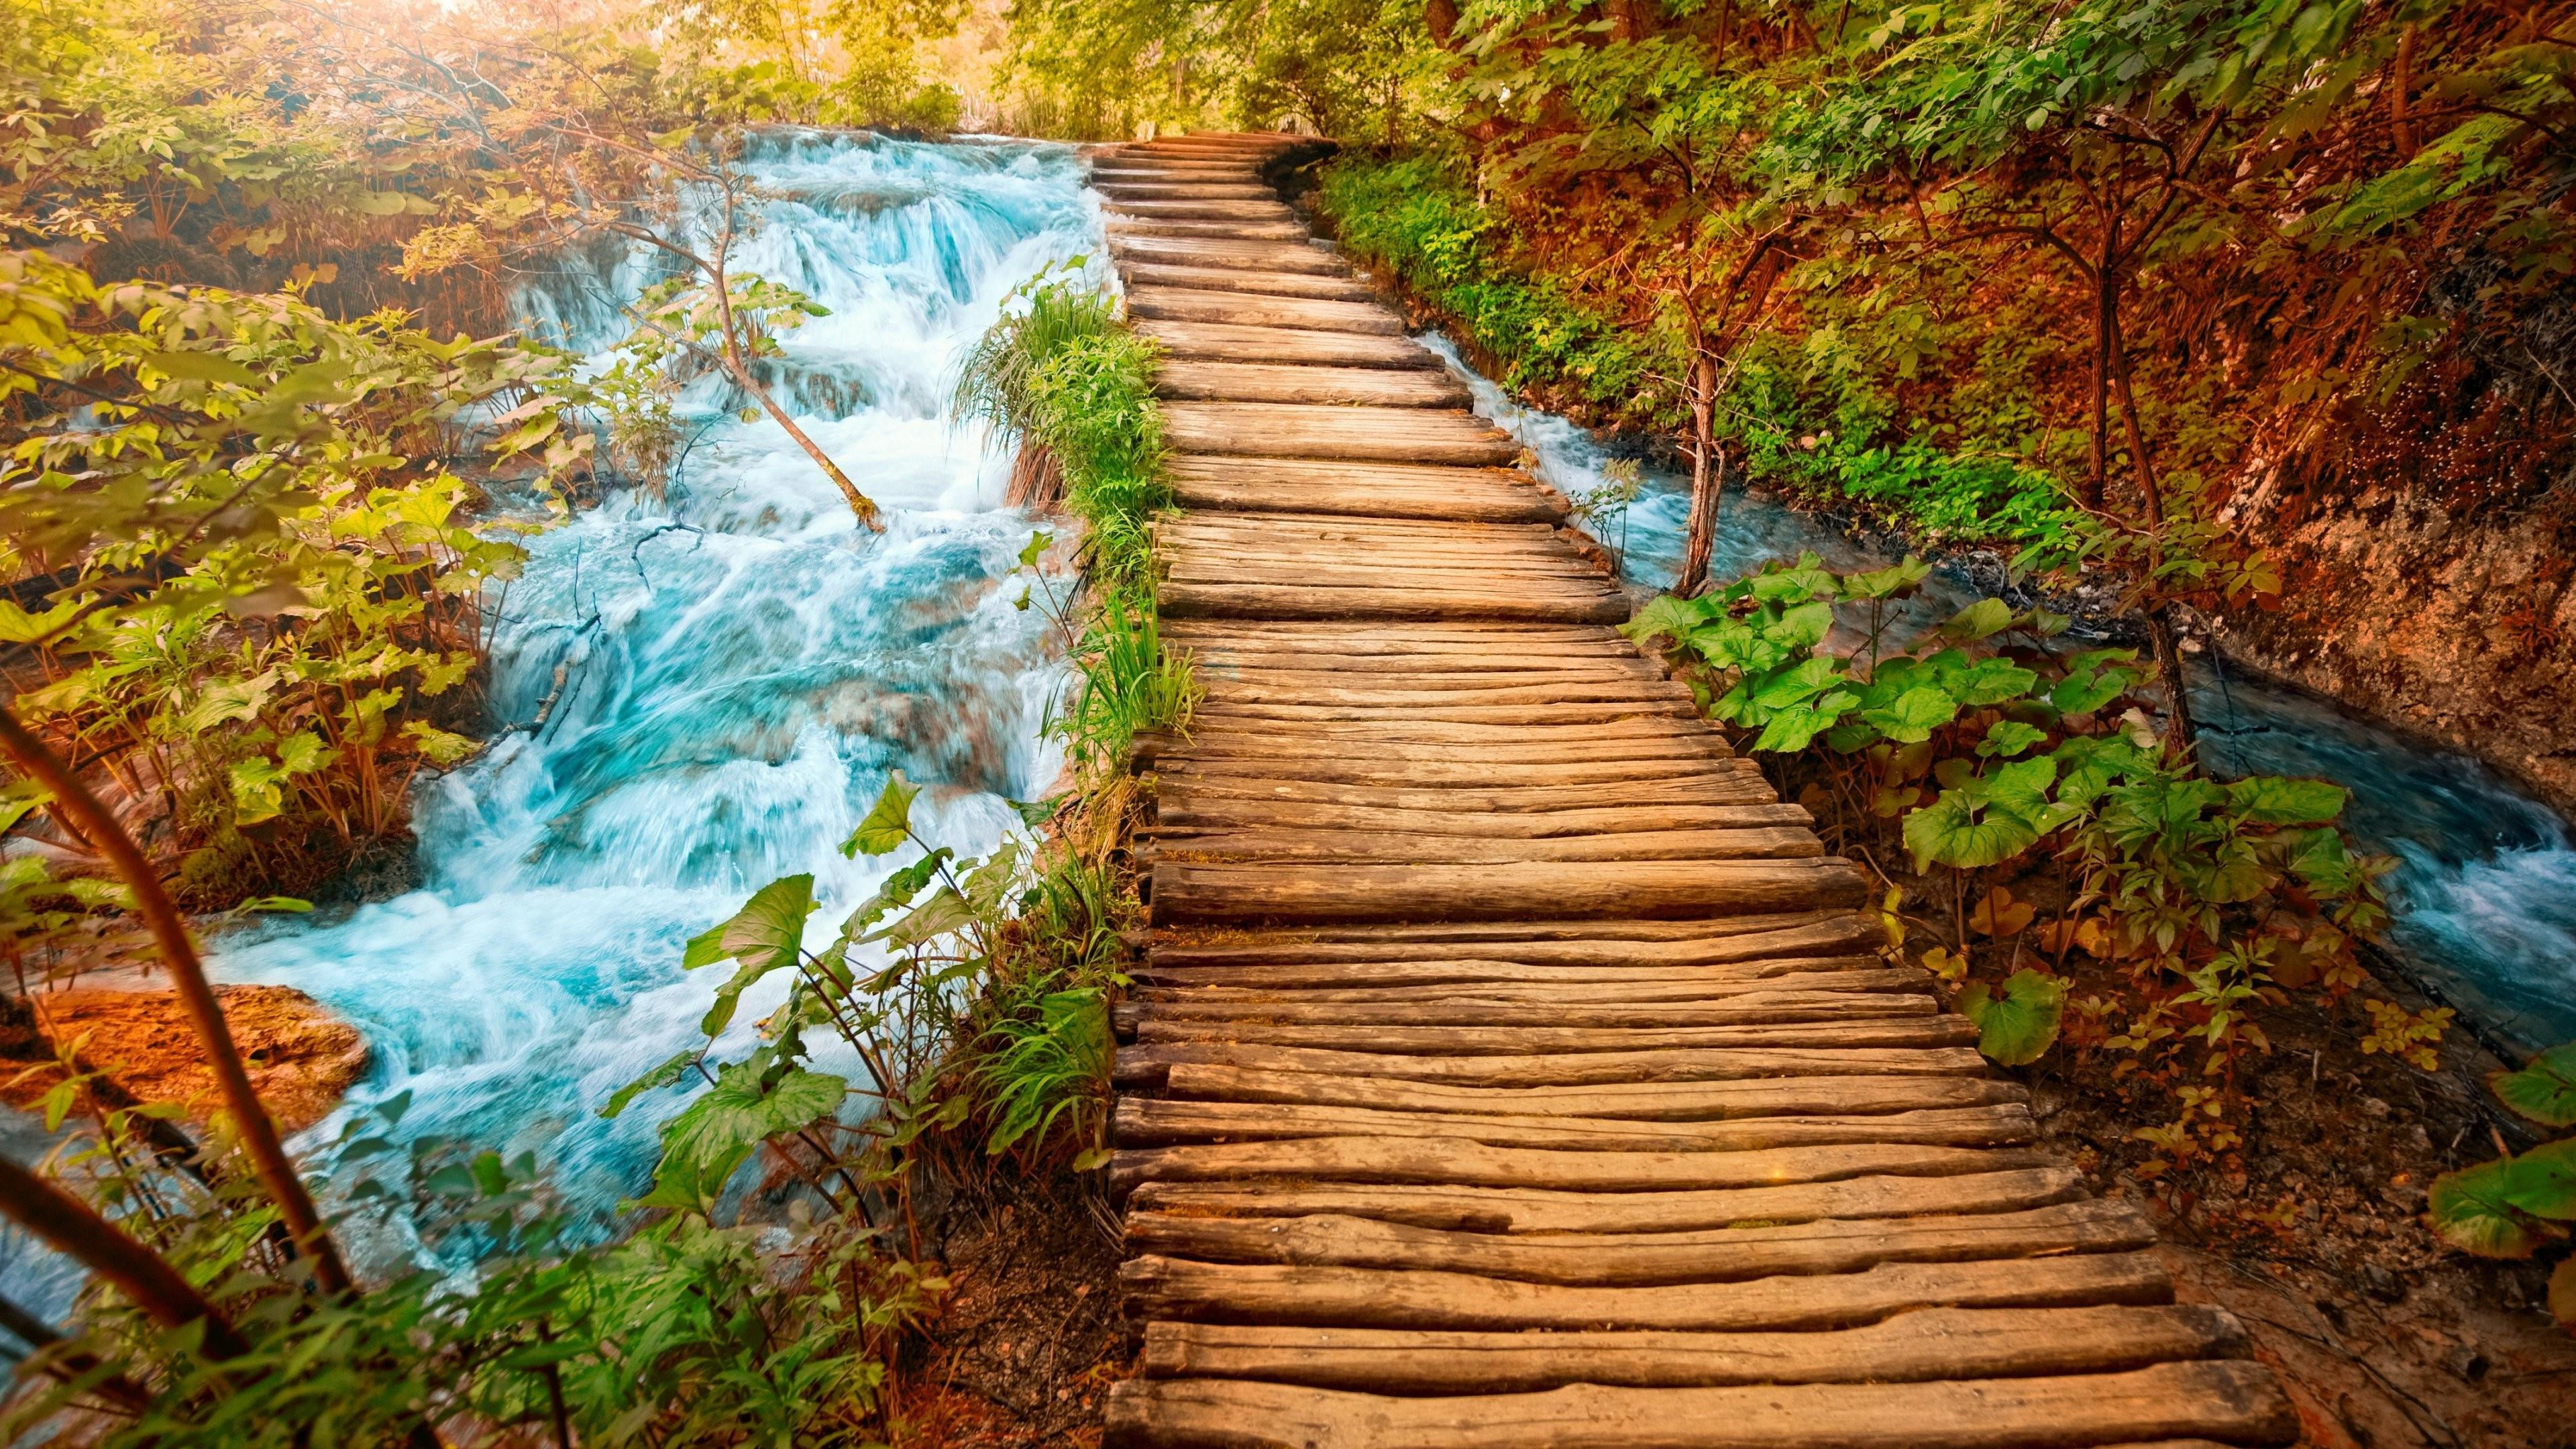 Hd Wallpaper Yosemite Fire Fall Wooden Path Rocky River With Small Waterfalls Clear Water